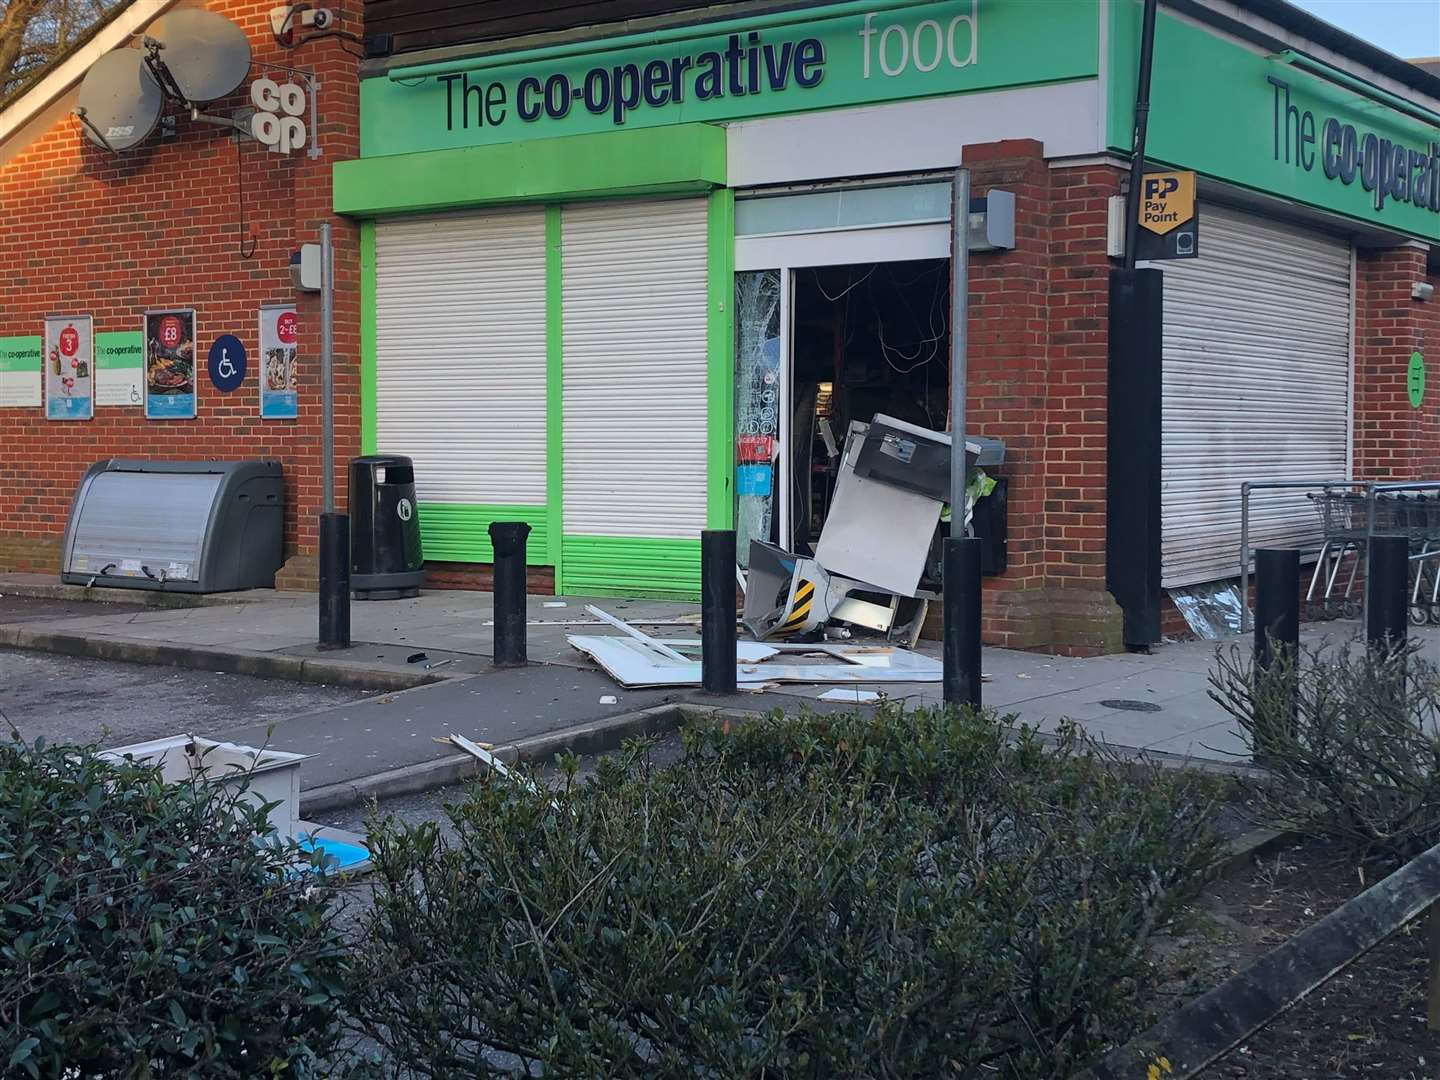 The Co-op in Faversham Road, Kennington (7031621)